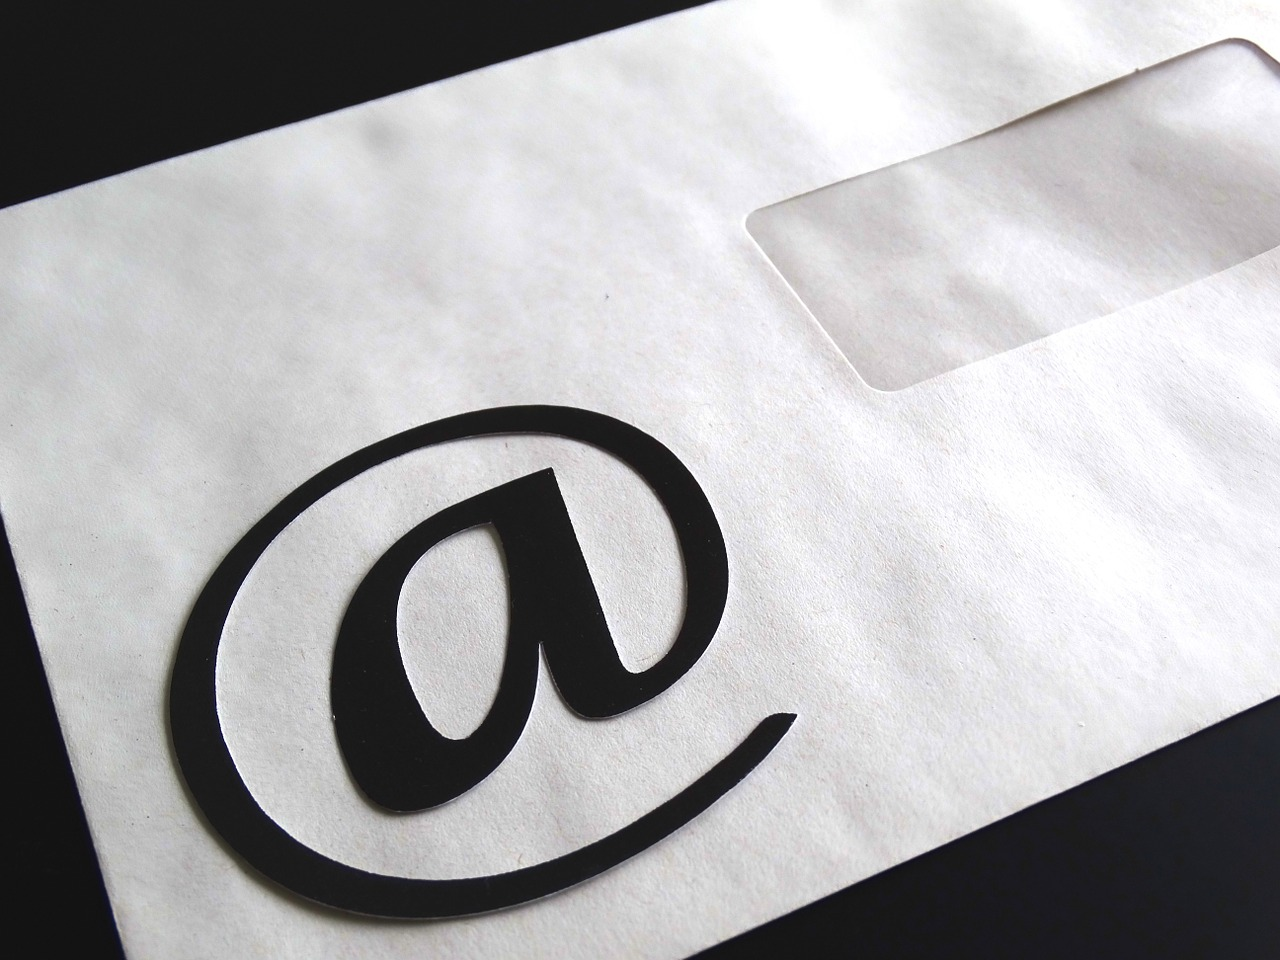 Three Reasons Why You Should Implement a Digital Mailroom